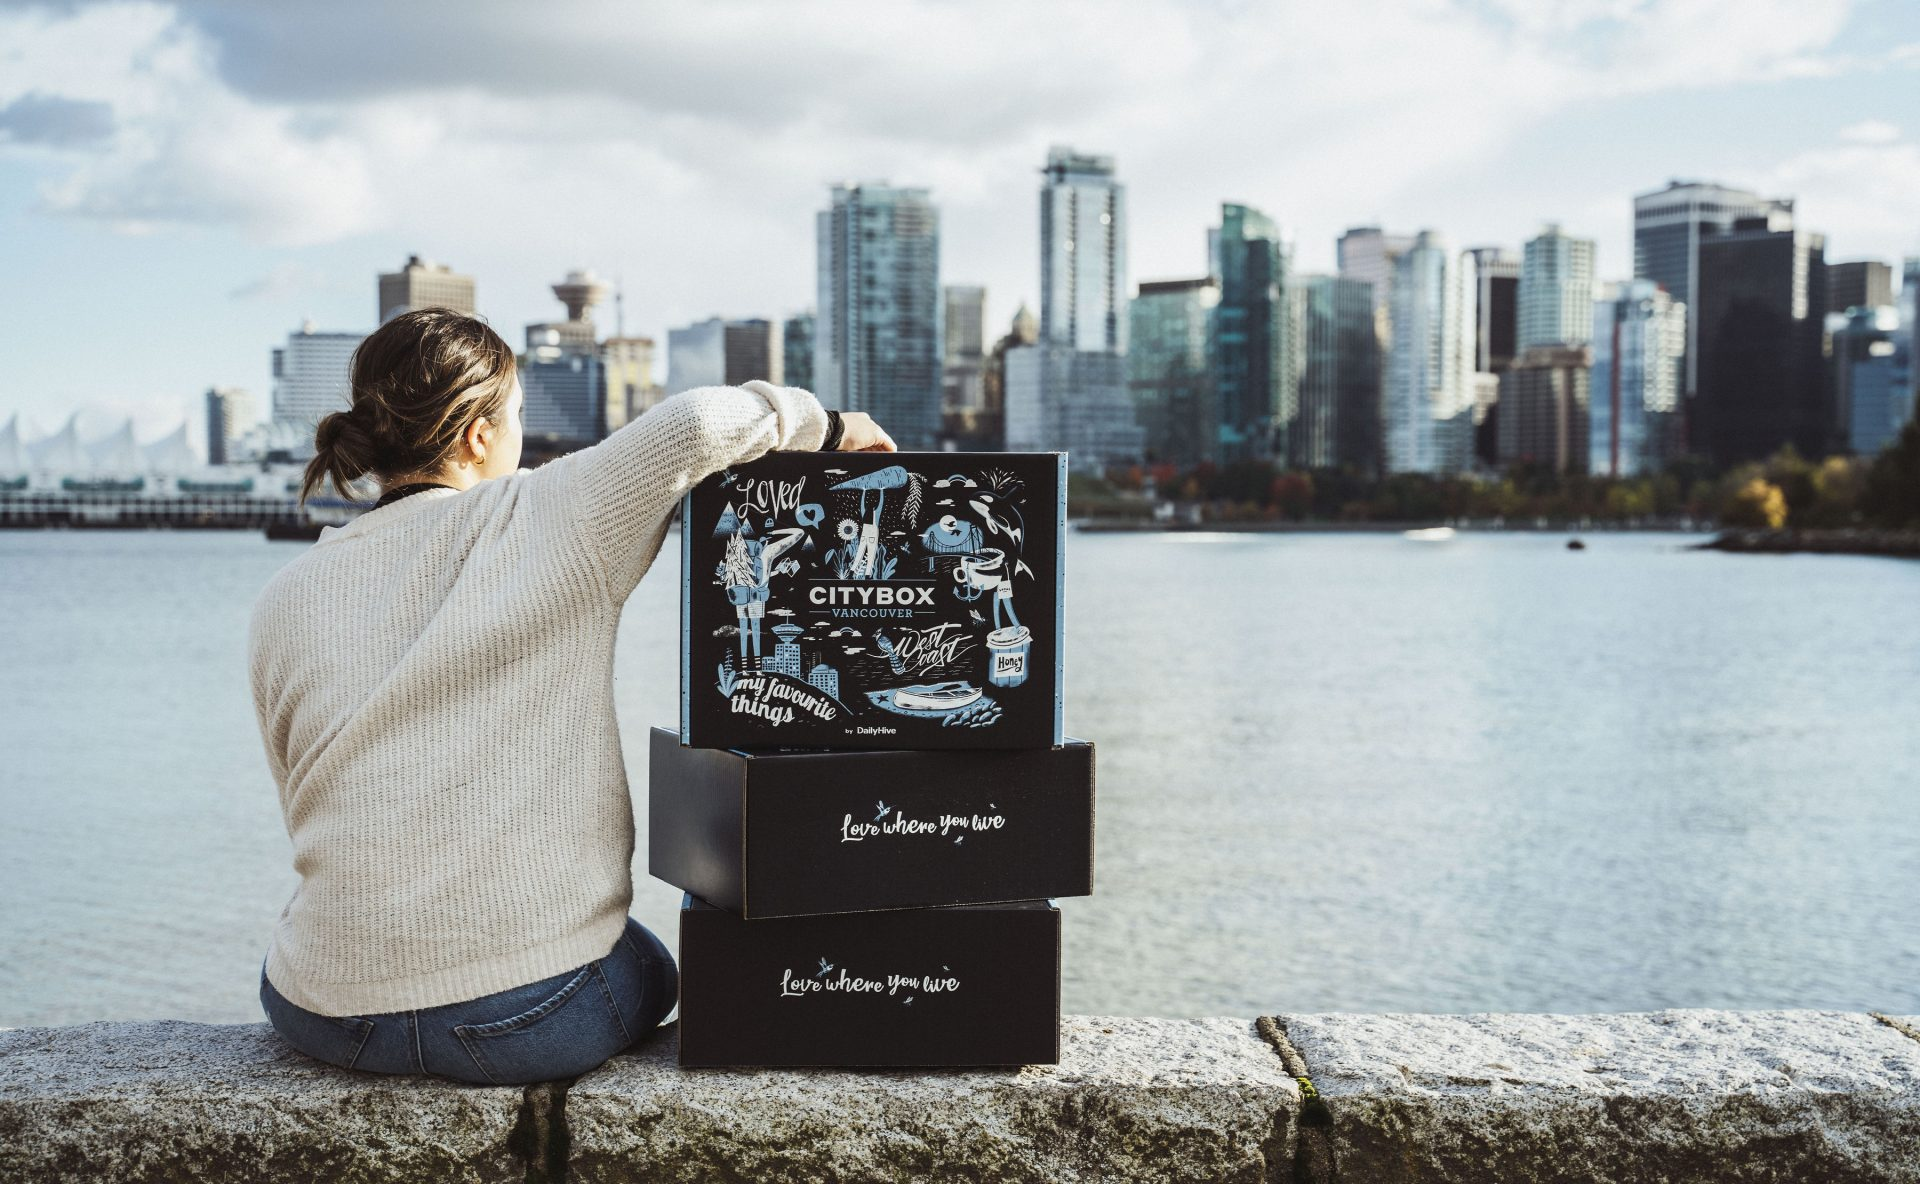 Curated by Daily Hive, the City Box has arrived